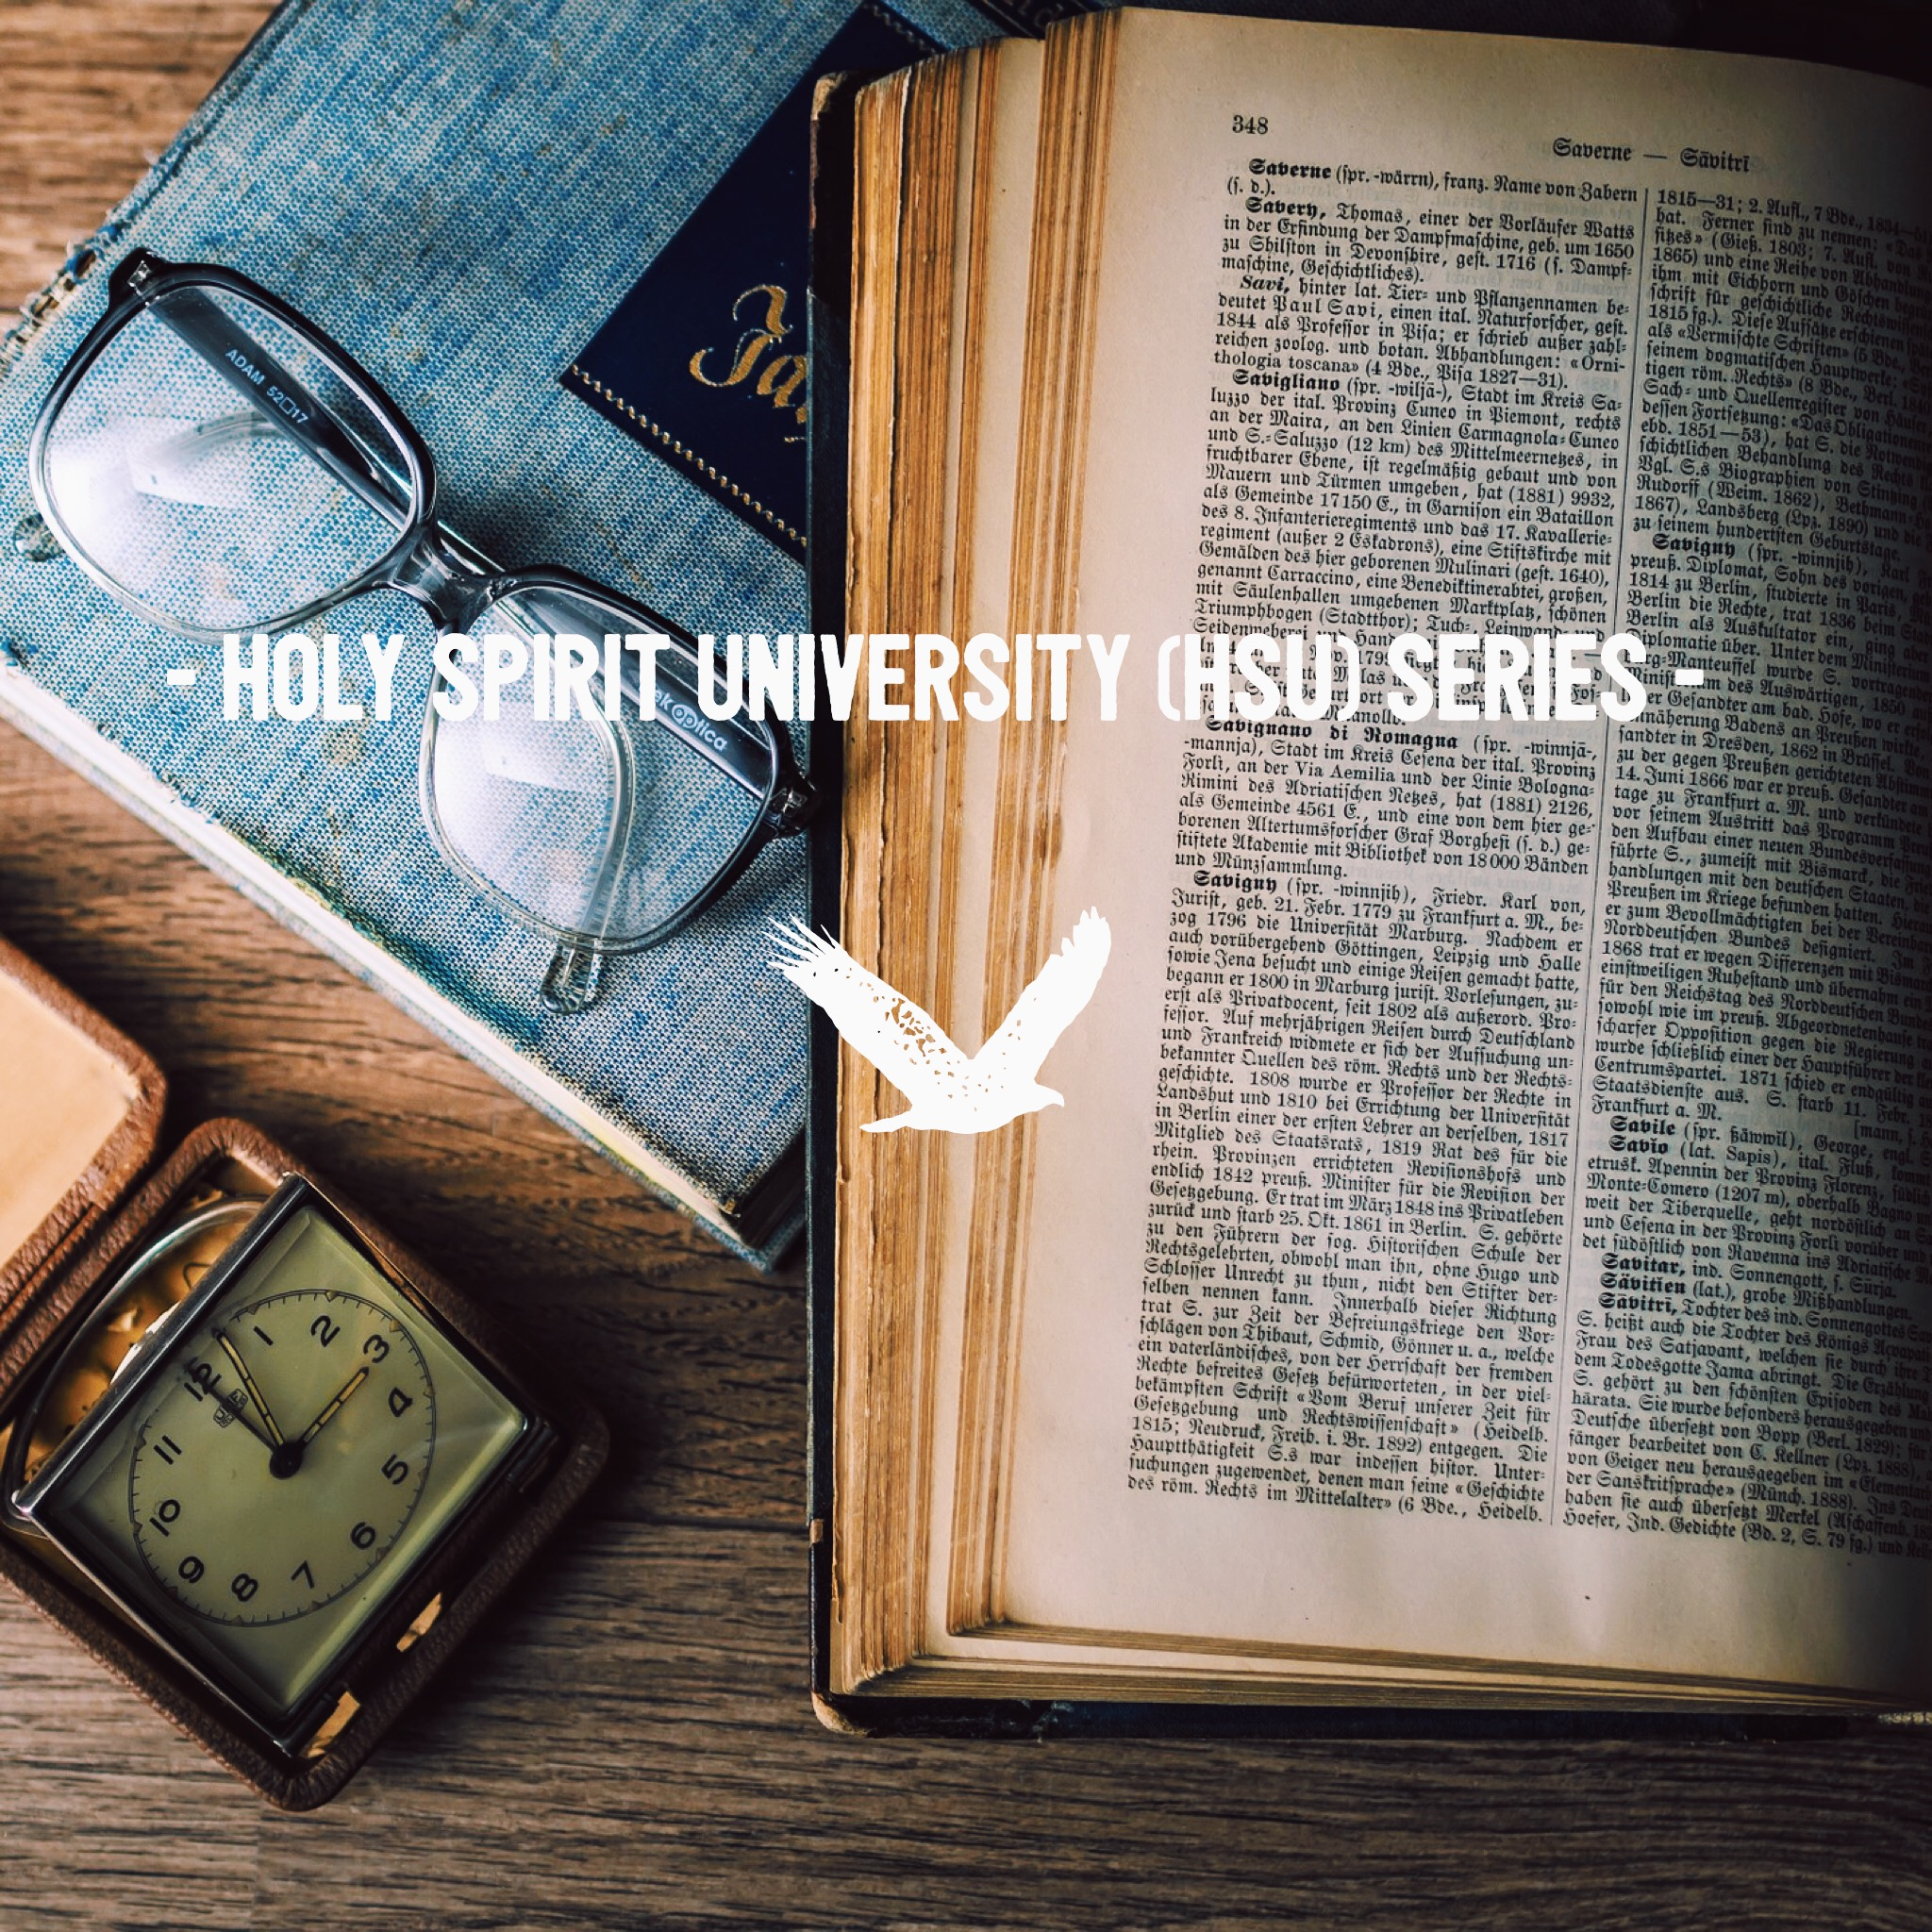 There Is A New Series Coming And Itu0027s About One Of My Favorite Members Of  The Godhead. Gosh, Love Them All. We Will Talk About Holy Spirit.